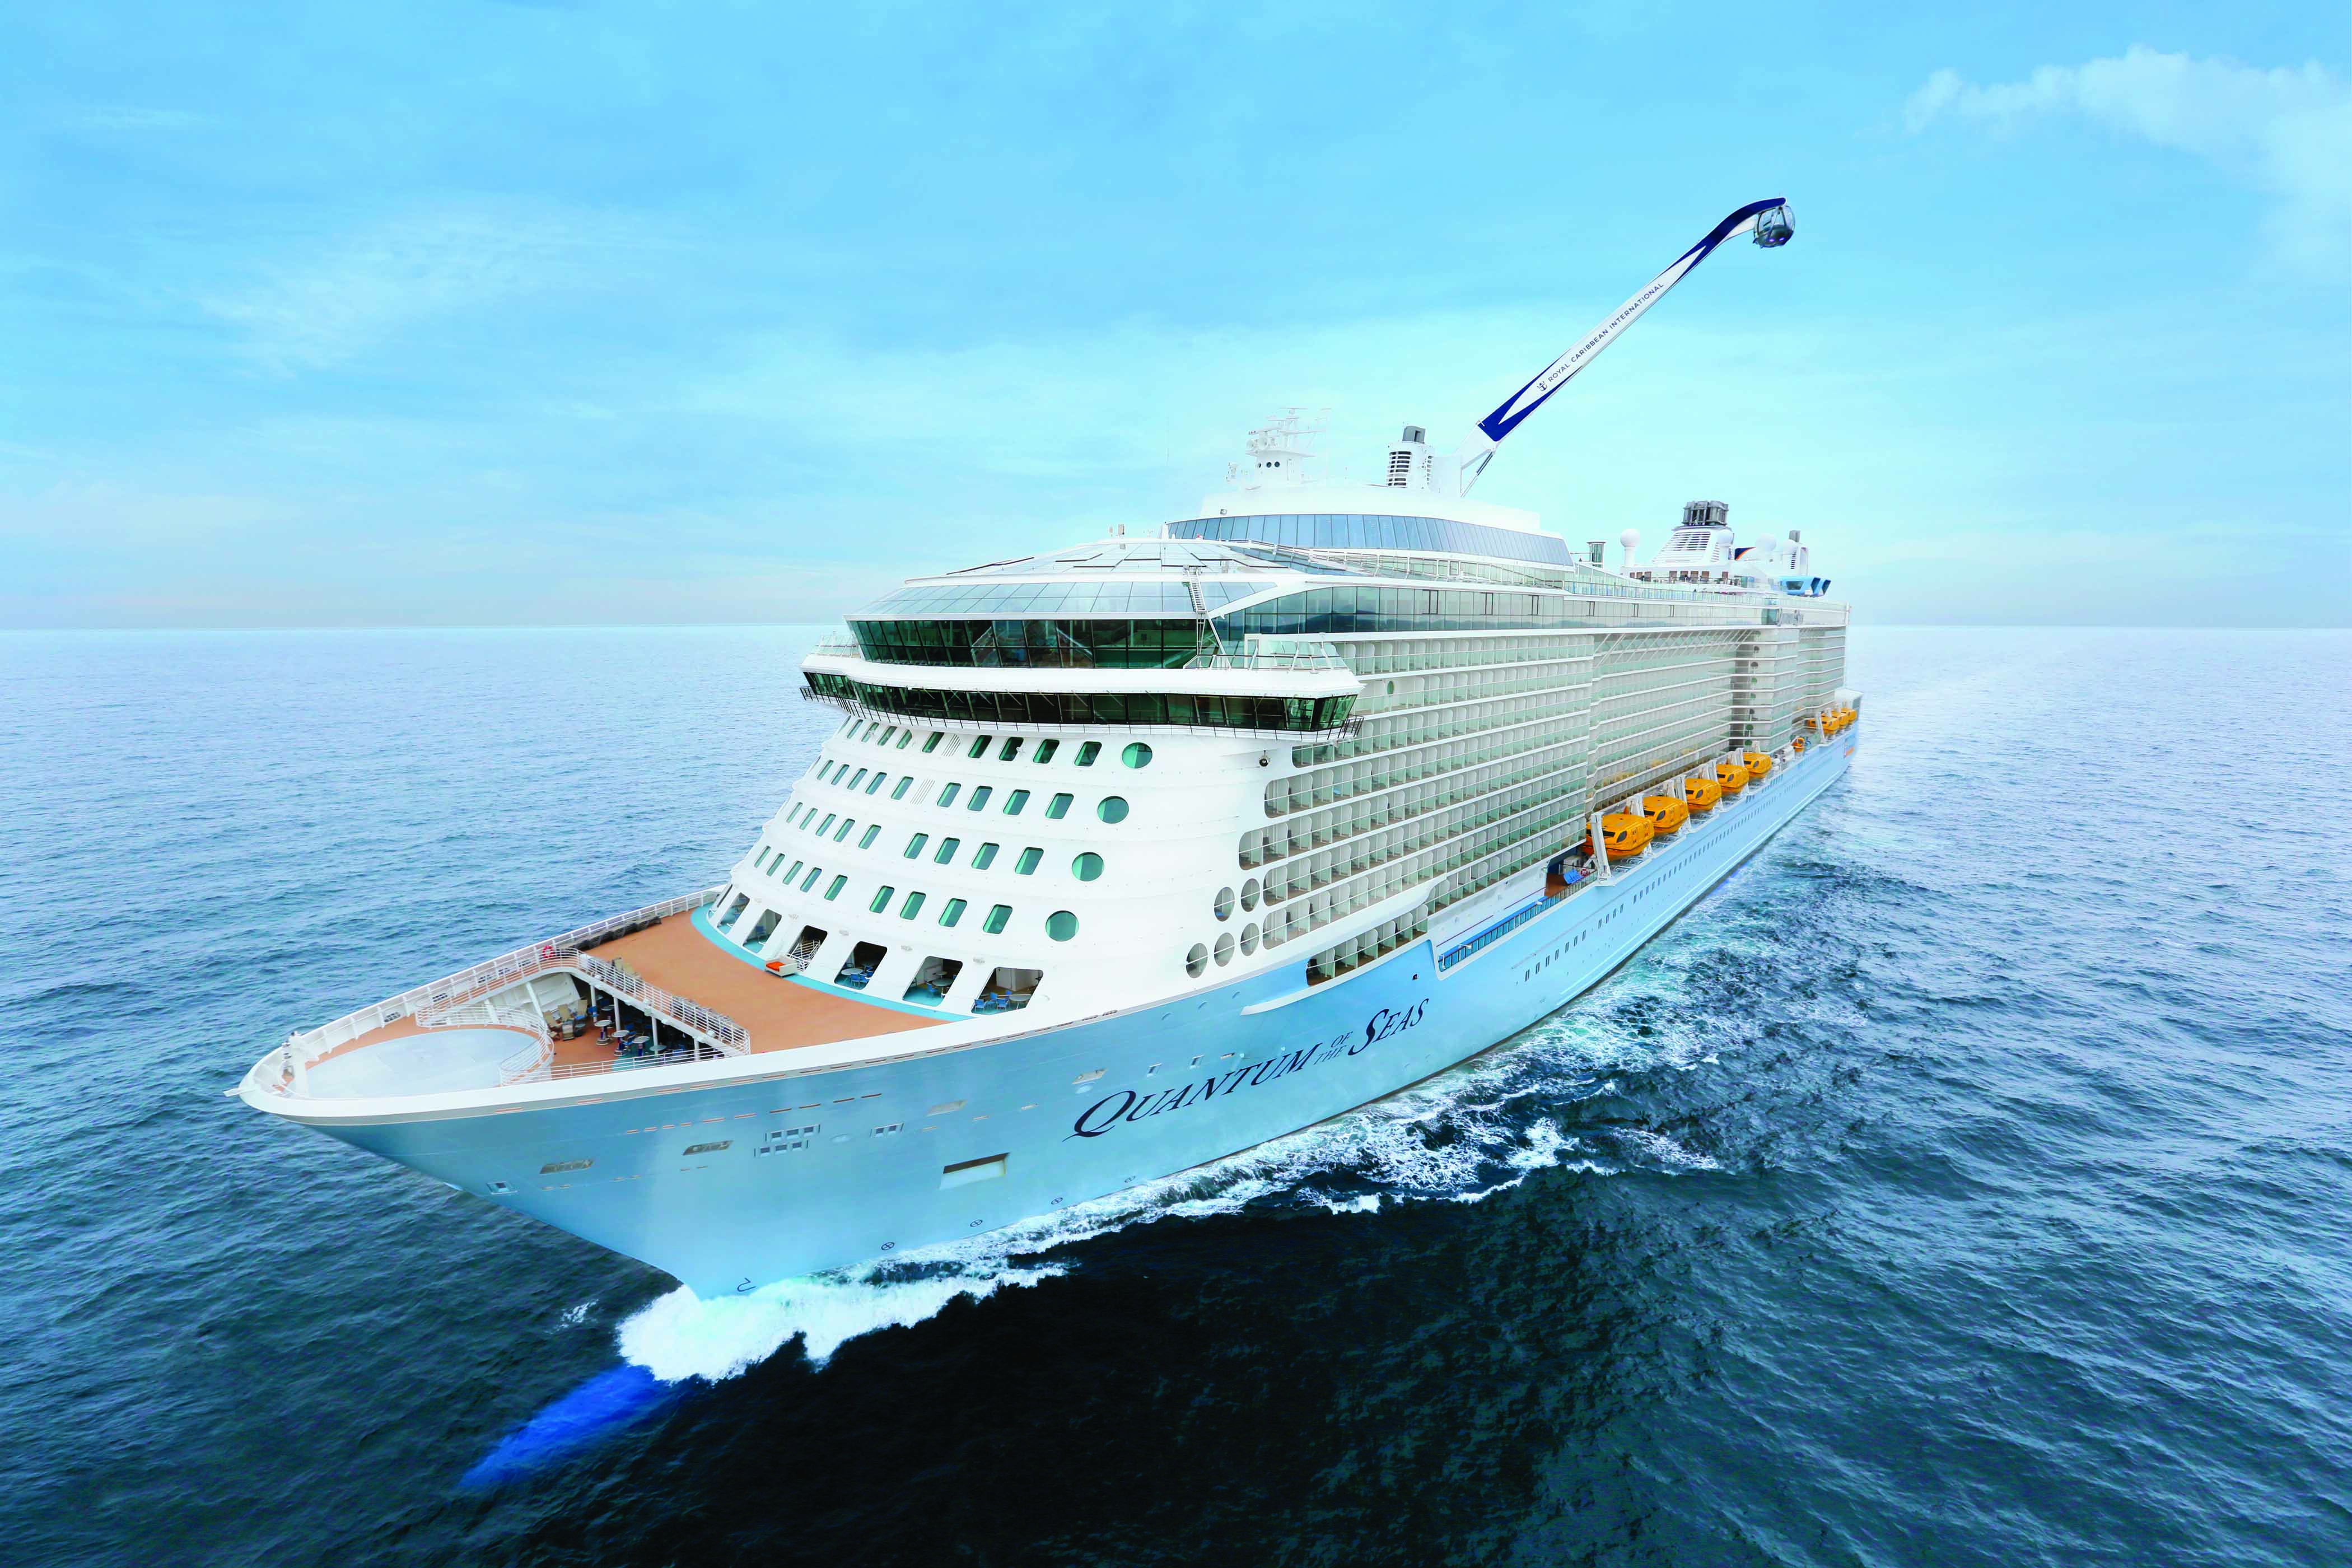 Royal Caribbean adds another Singapore Season for Quantum of the Seas till April 2021 - Alvinology